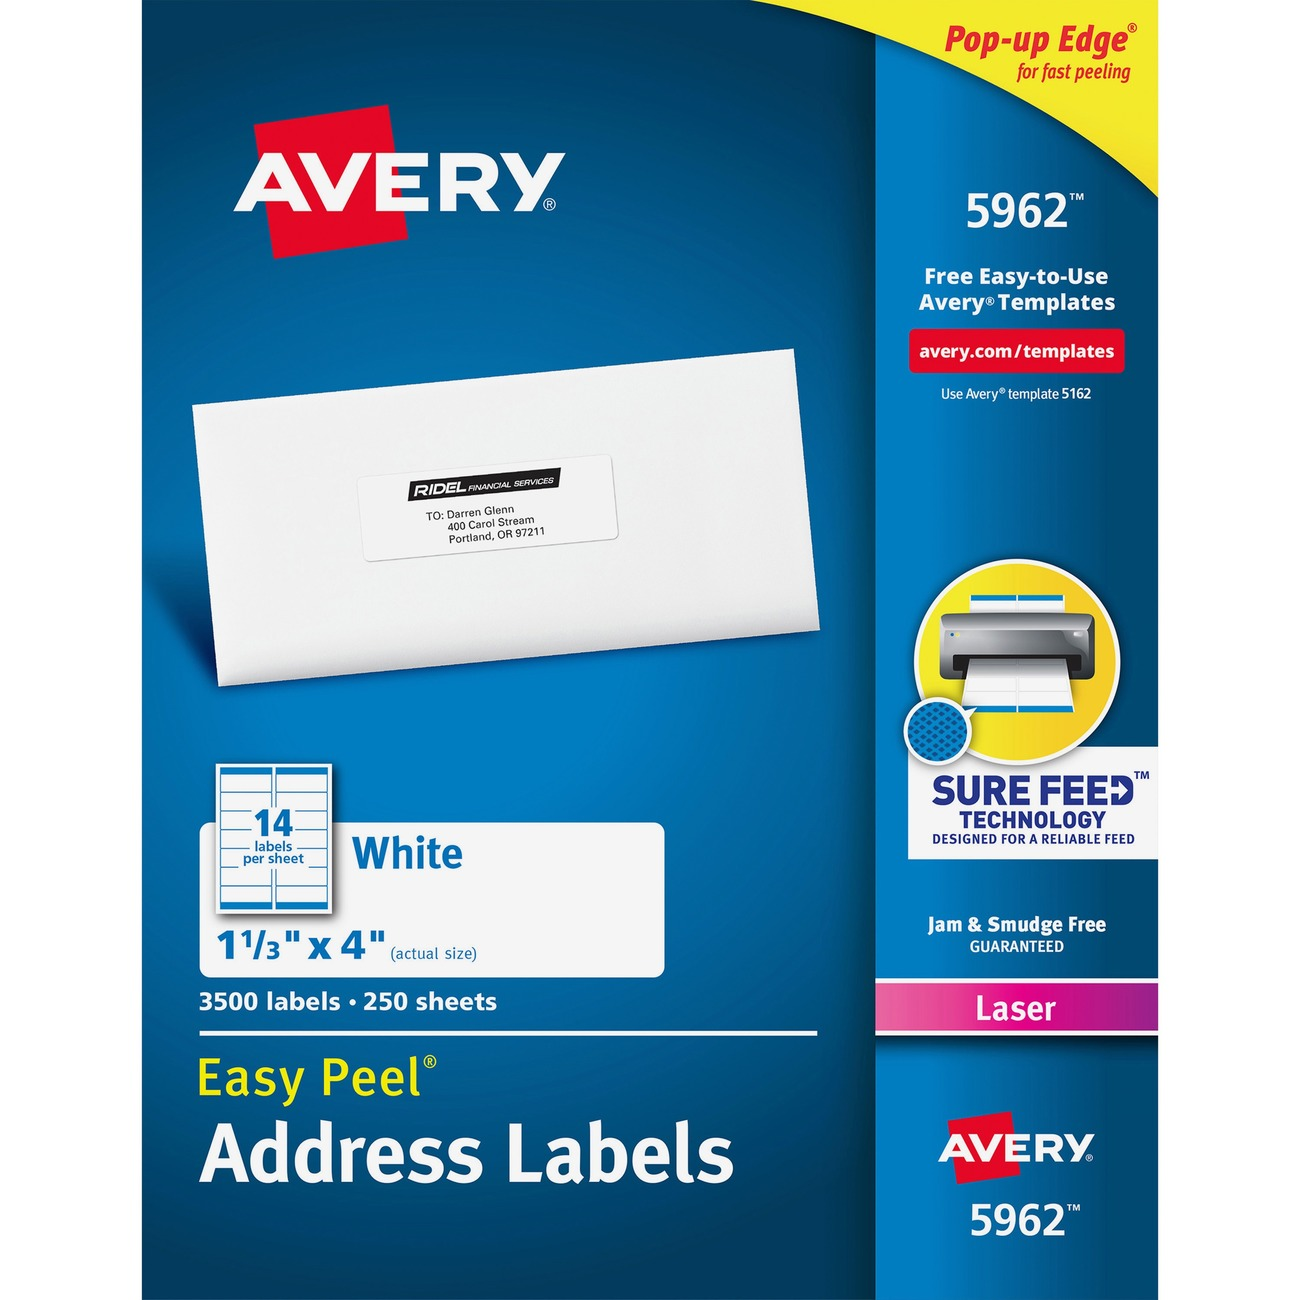 Printer for Avery template 5962